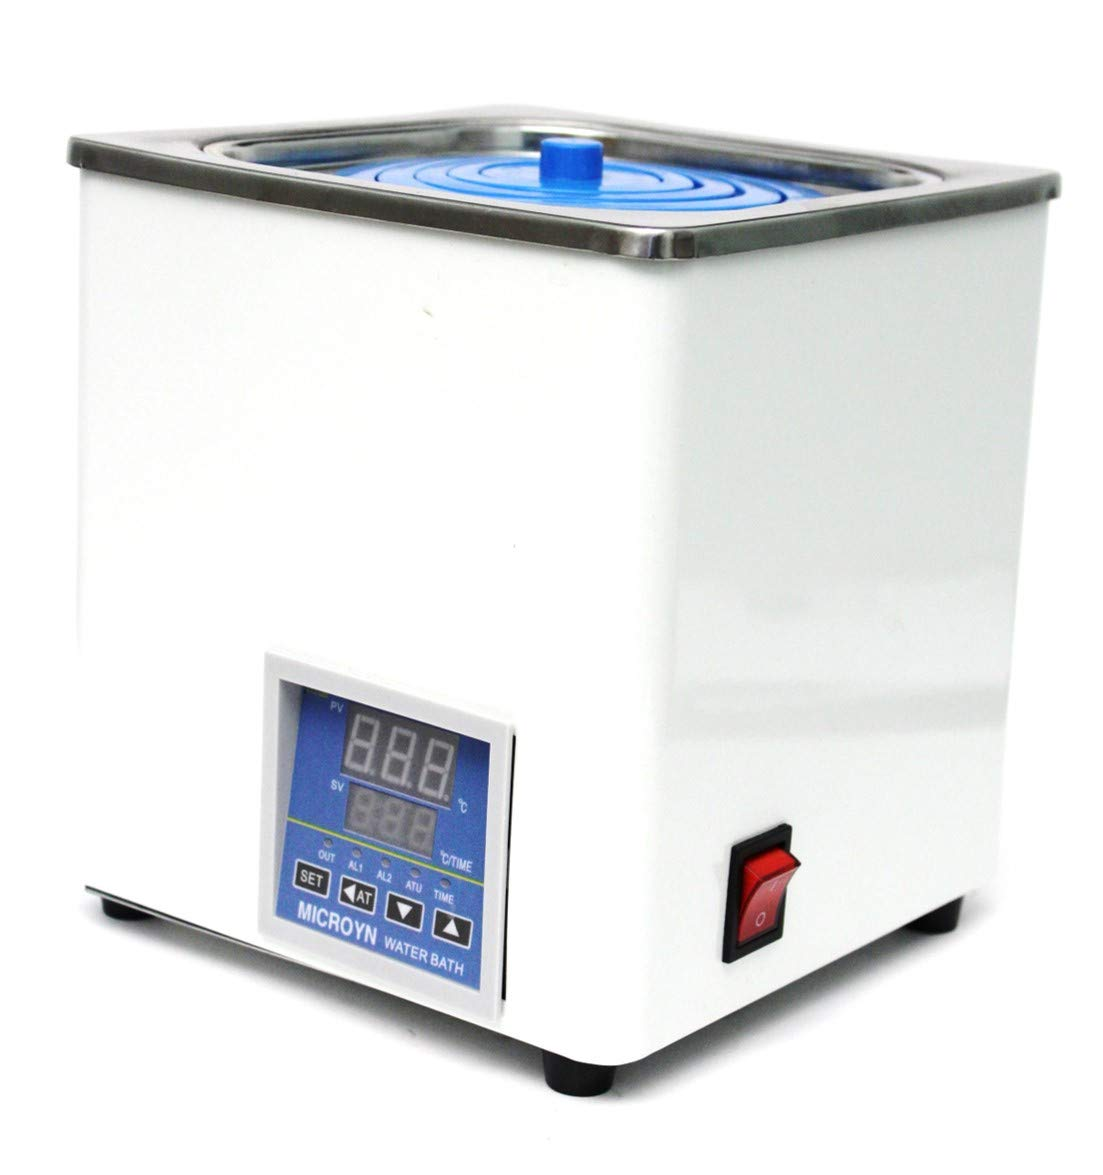 Microyn Digital Thermostatic Water Bath with Selectable Openings, 3L Capacity, 120V/60 Hz (MT-BHS-1)